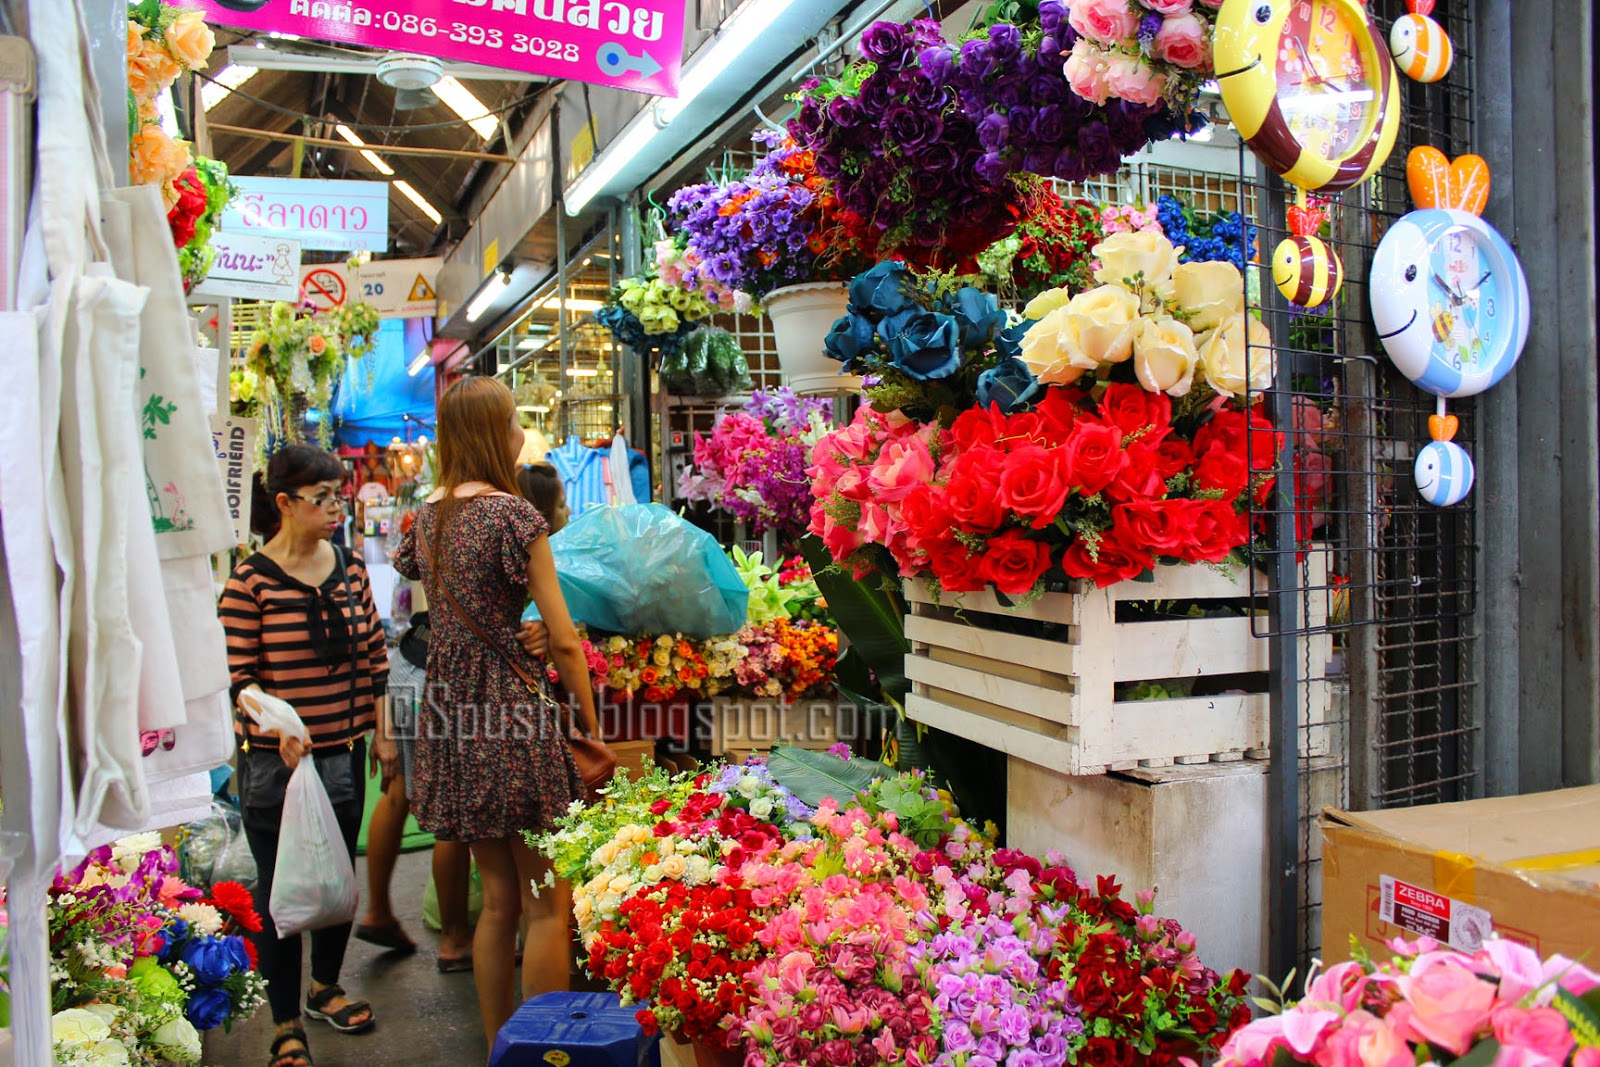 Spusht chatuchak market jatujak jj market same thing spusht flower shops in chatuchak weekend market bangkok thailand mightylinksfo